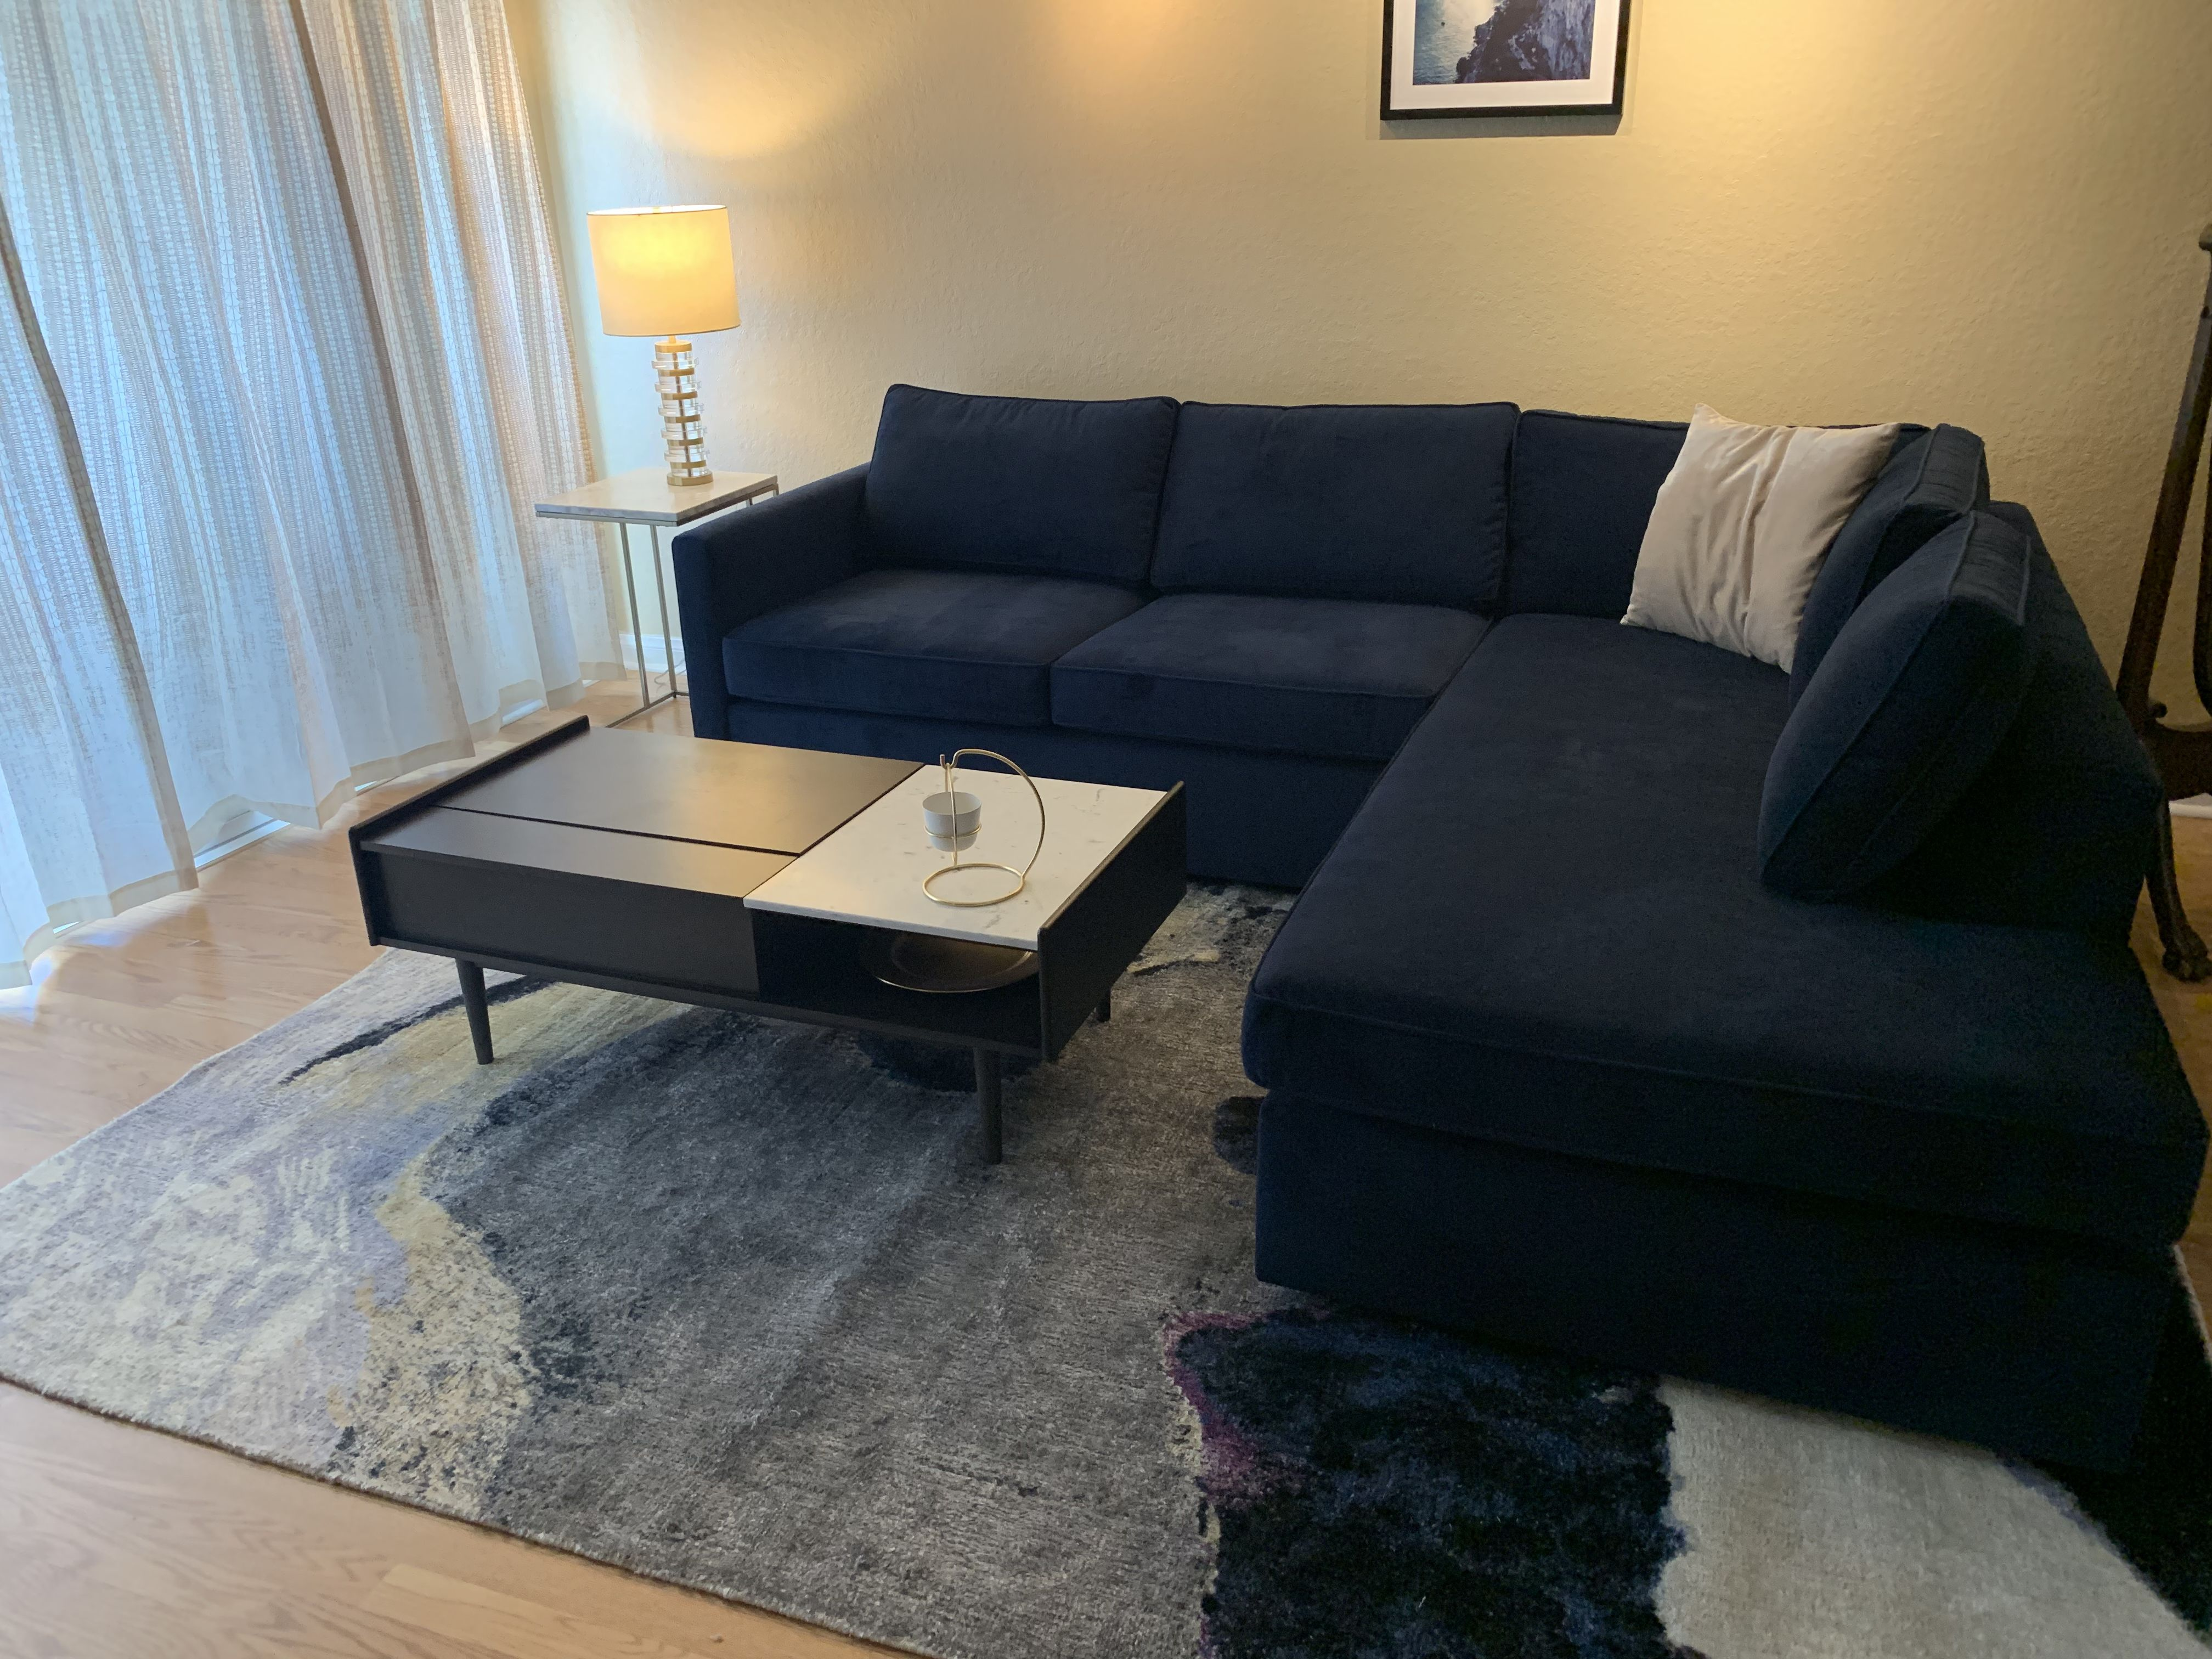 Velvet Couch Ink Blue Mid Century Modern Velvet Couch Living Room West Elm Sofa Grey Couch Living Room